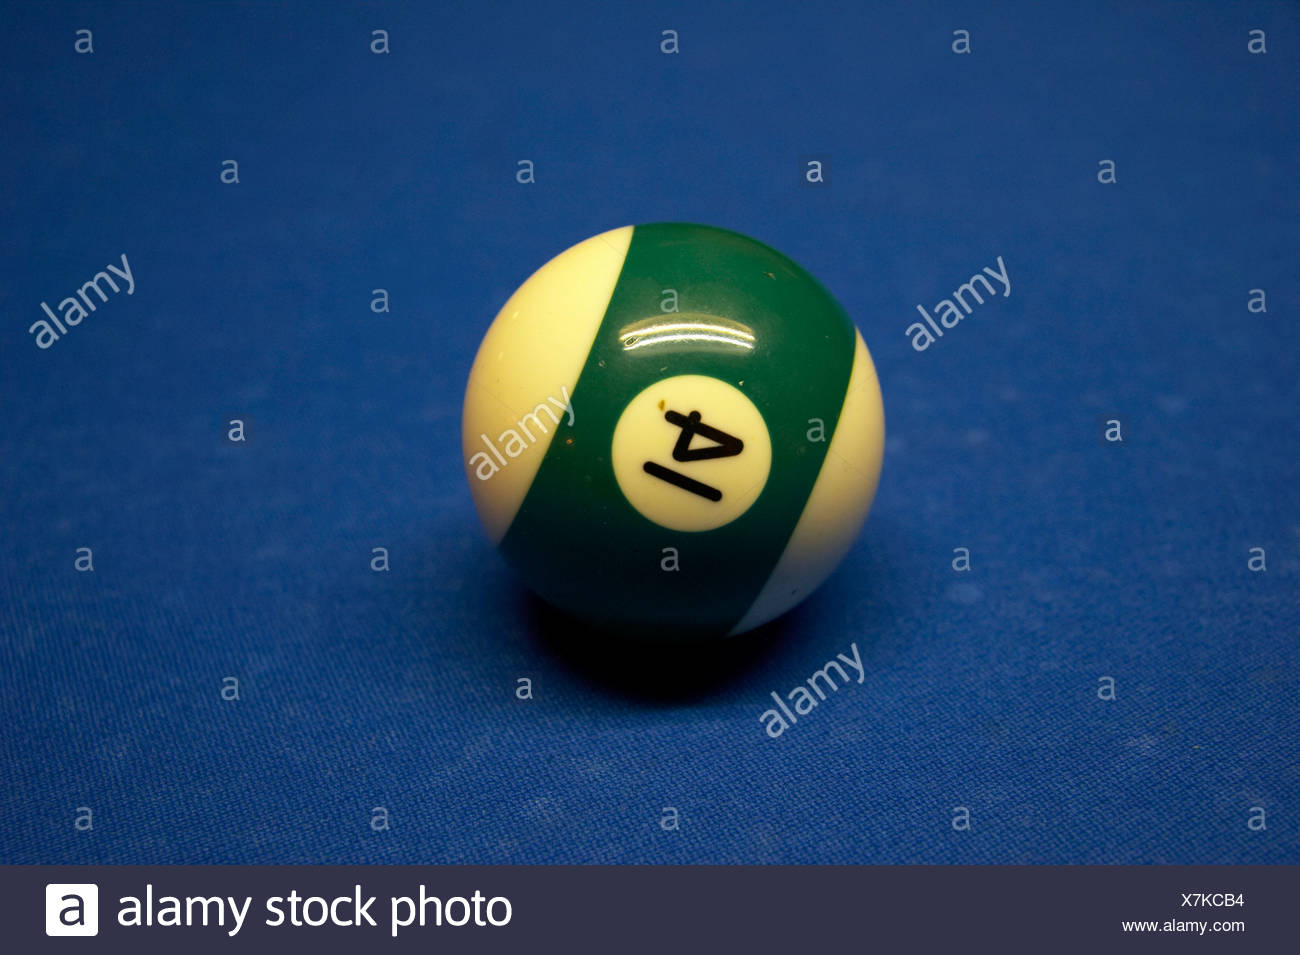 Billard Oldenburg Society 8 Ball Stock Photos Society 8 Ball Stock Images Alamy